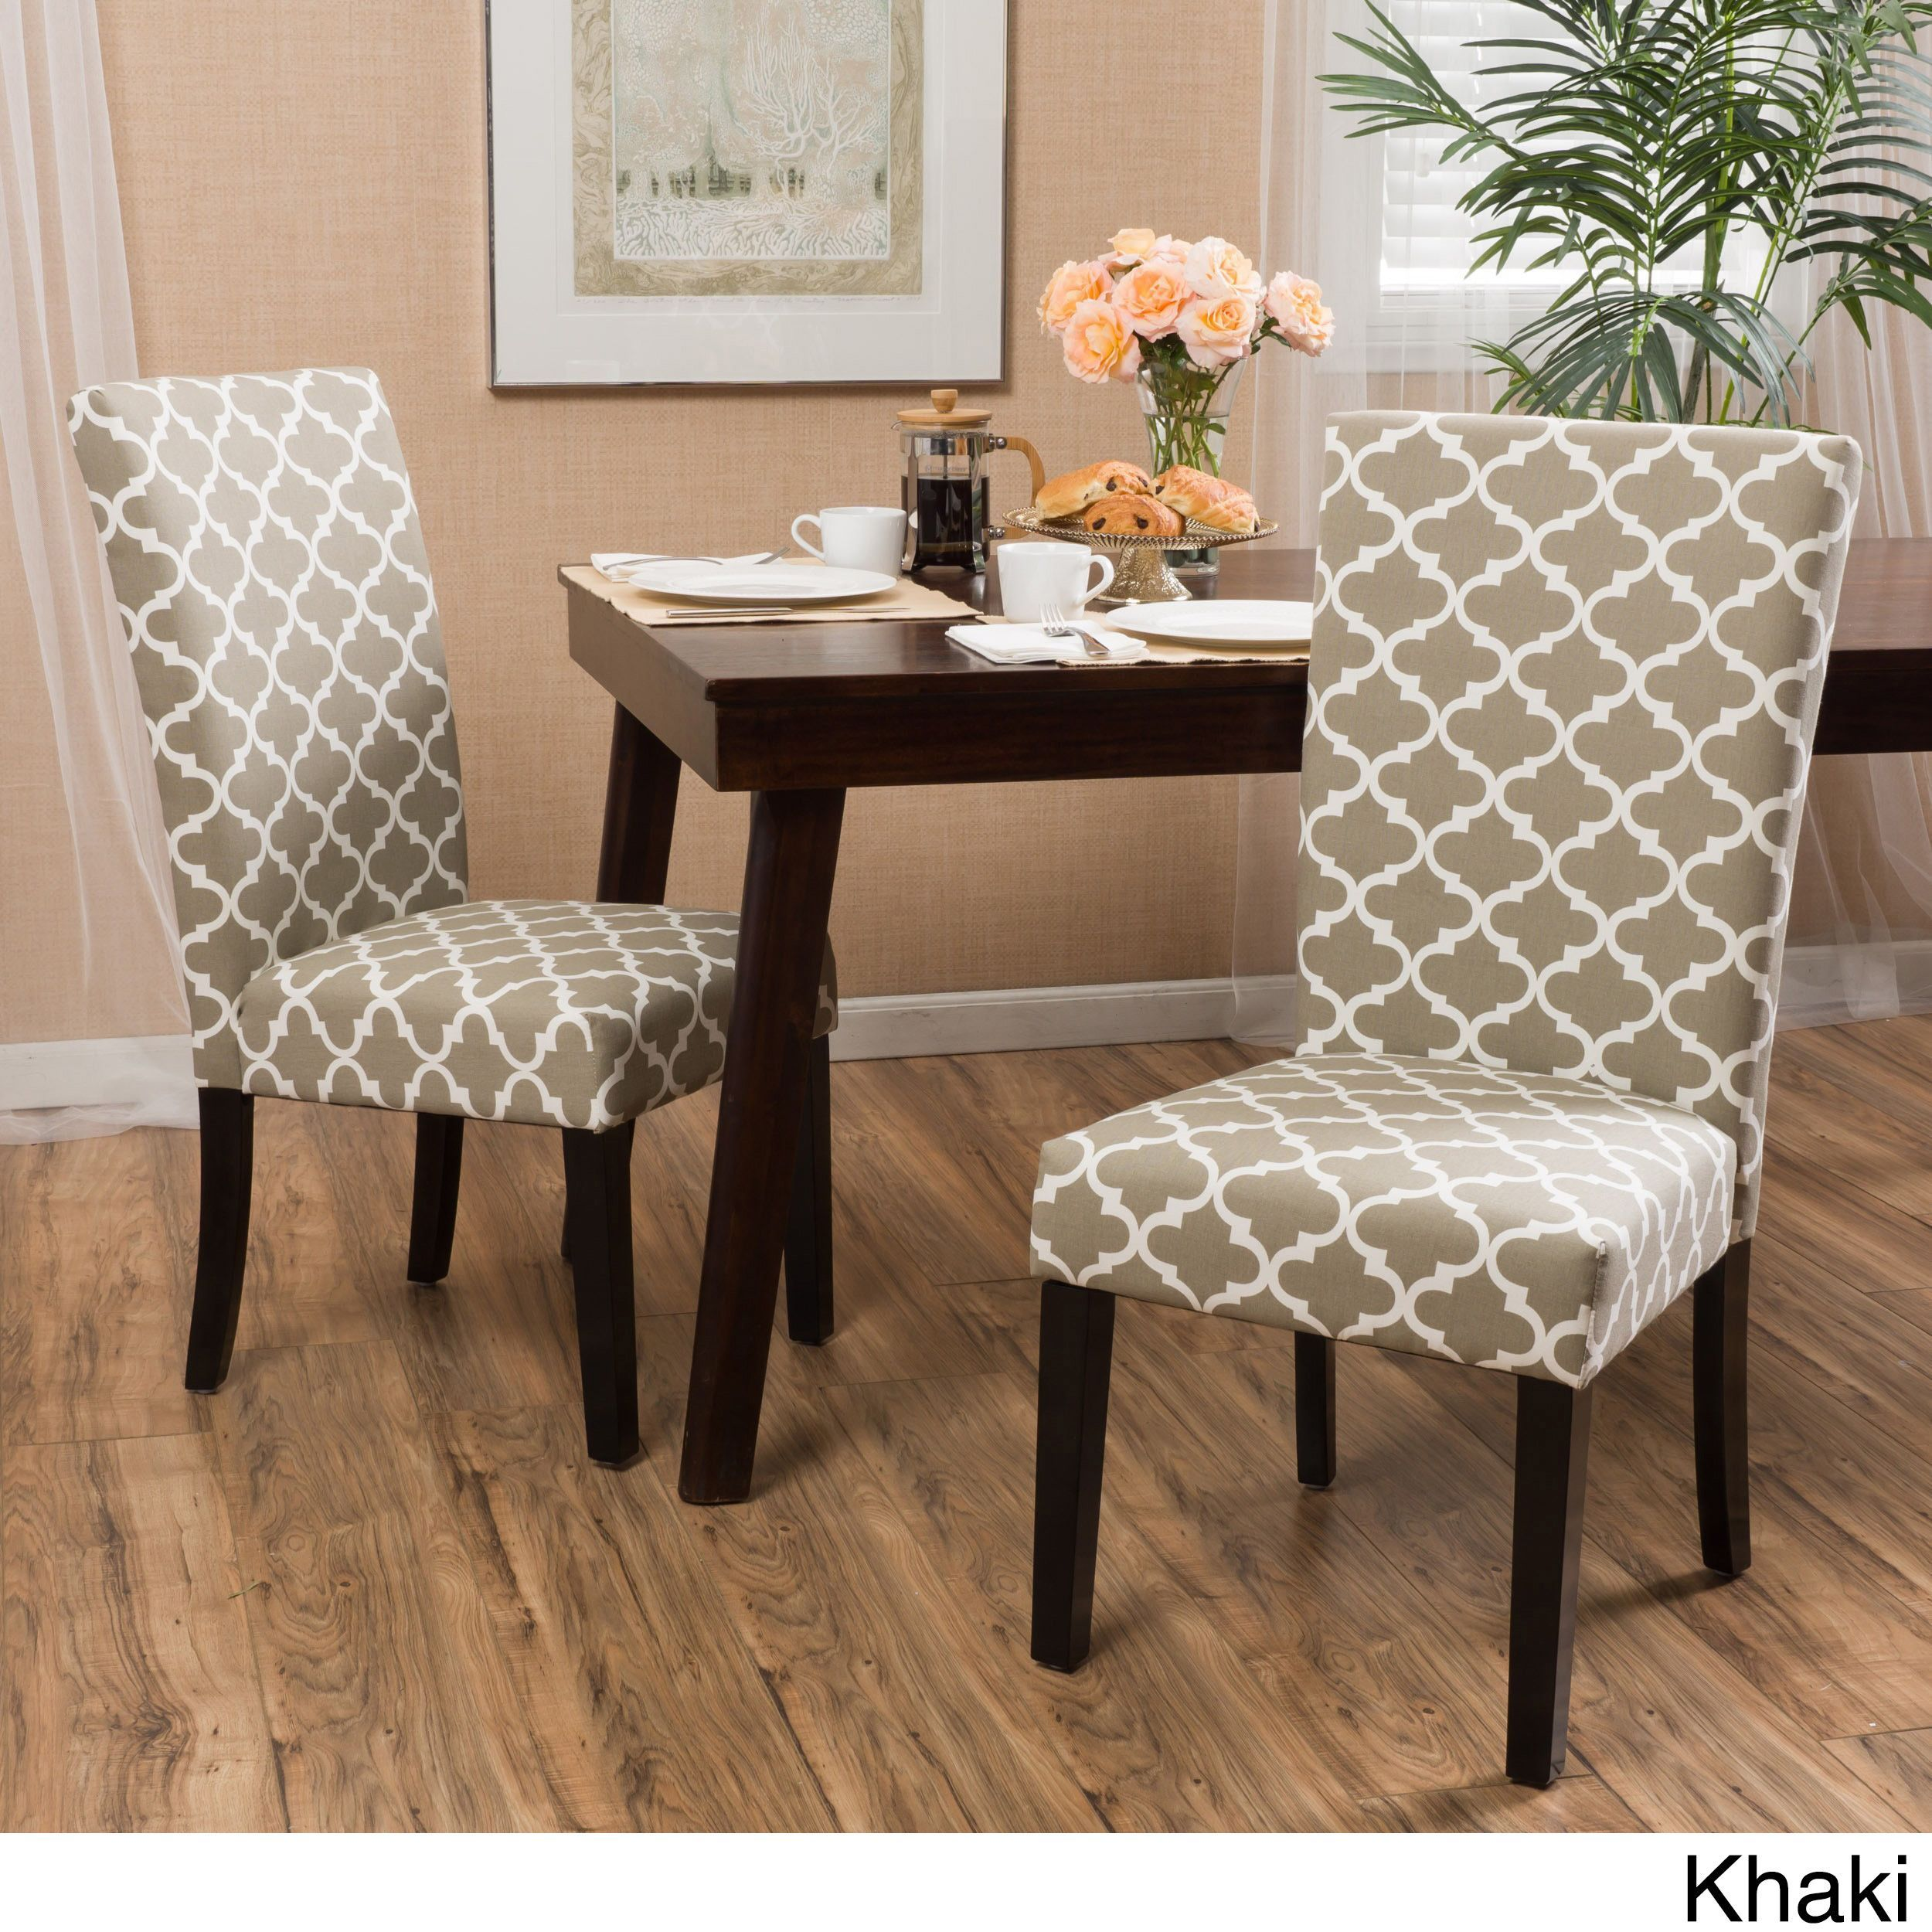 Aurora Fabric Geometric Print Dining Chair Set Of 2 Impressive Patterned Dining Room Chairs Inspiration Design